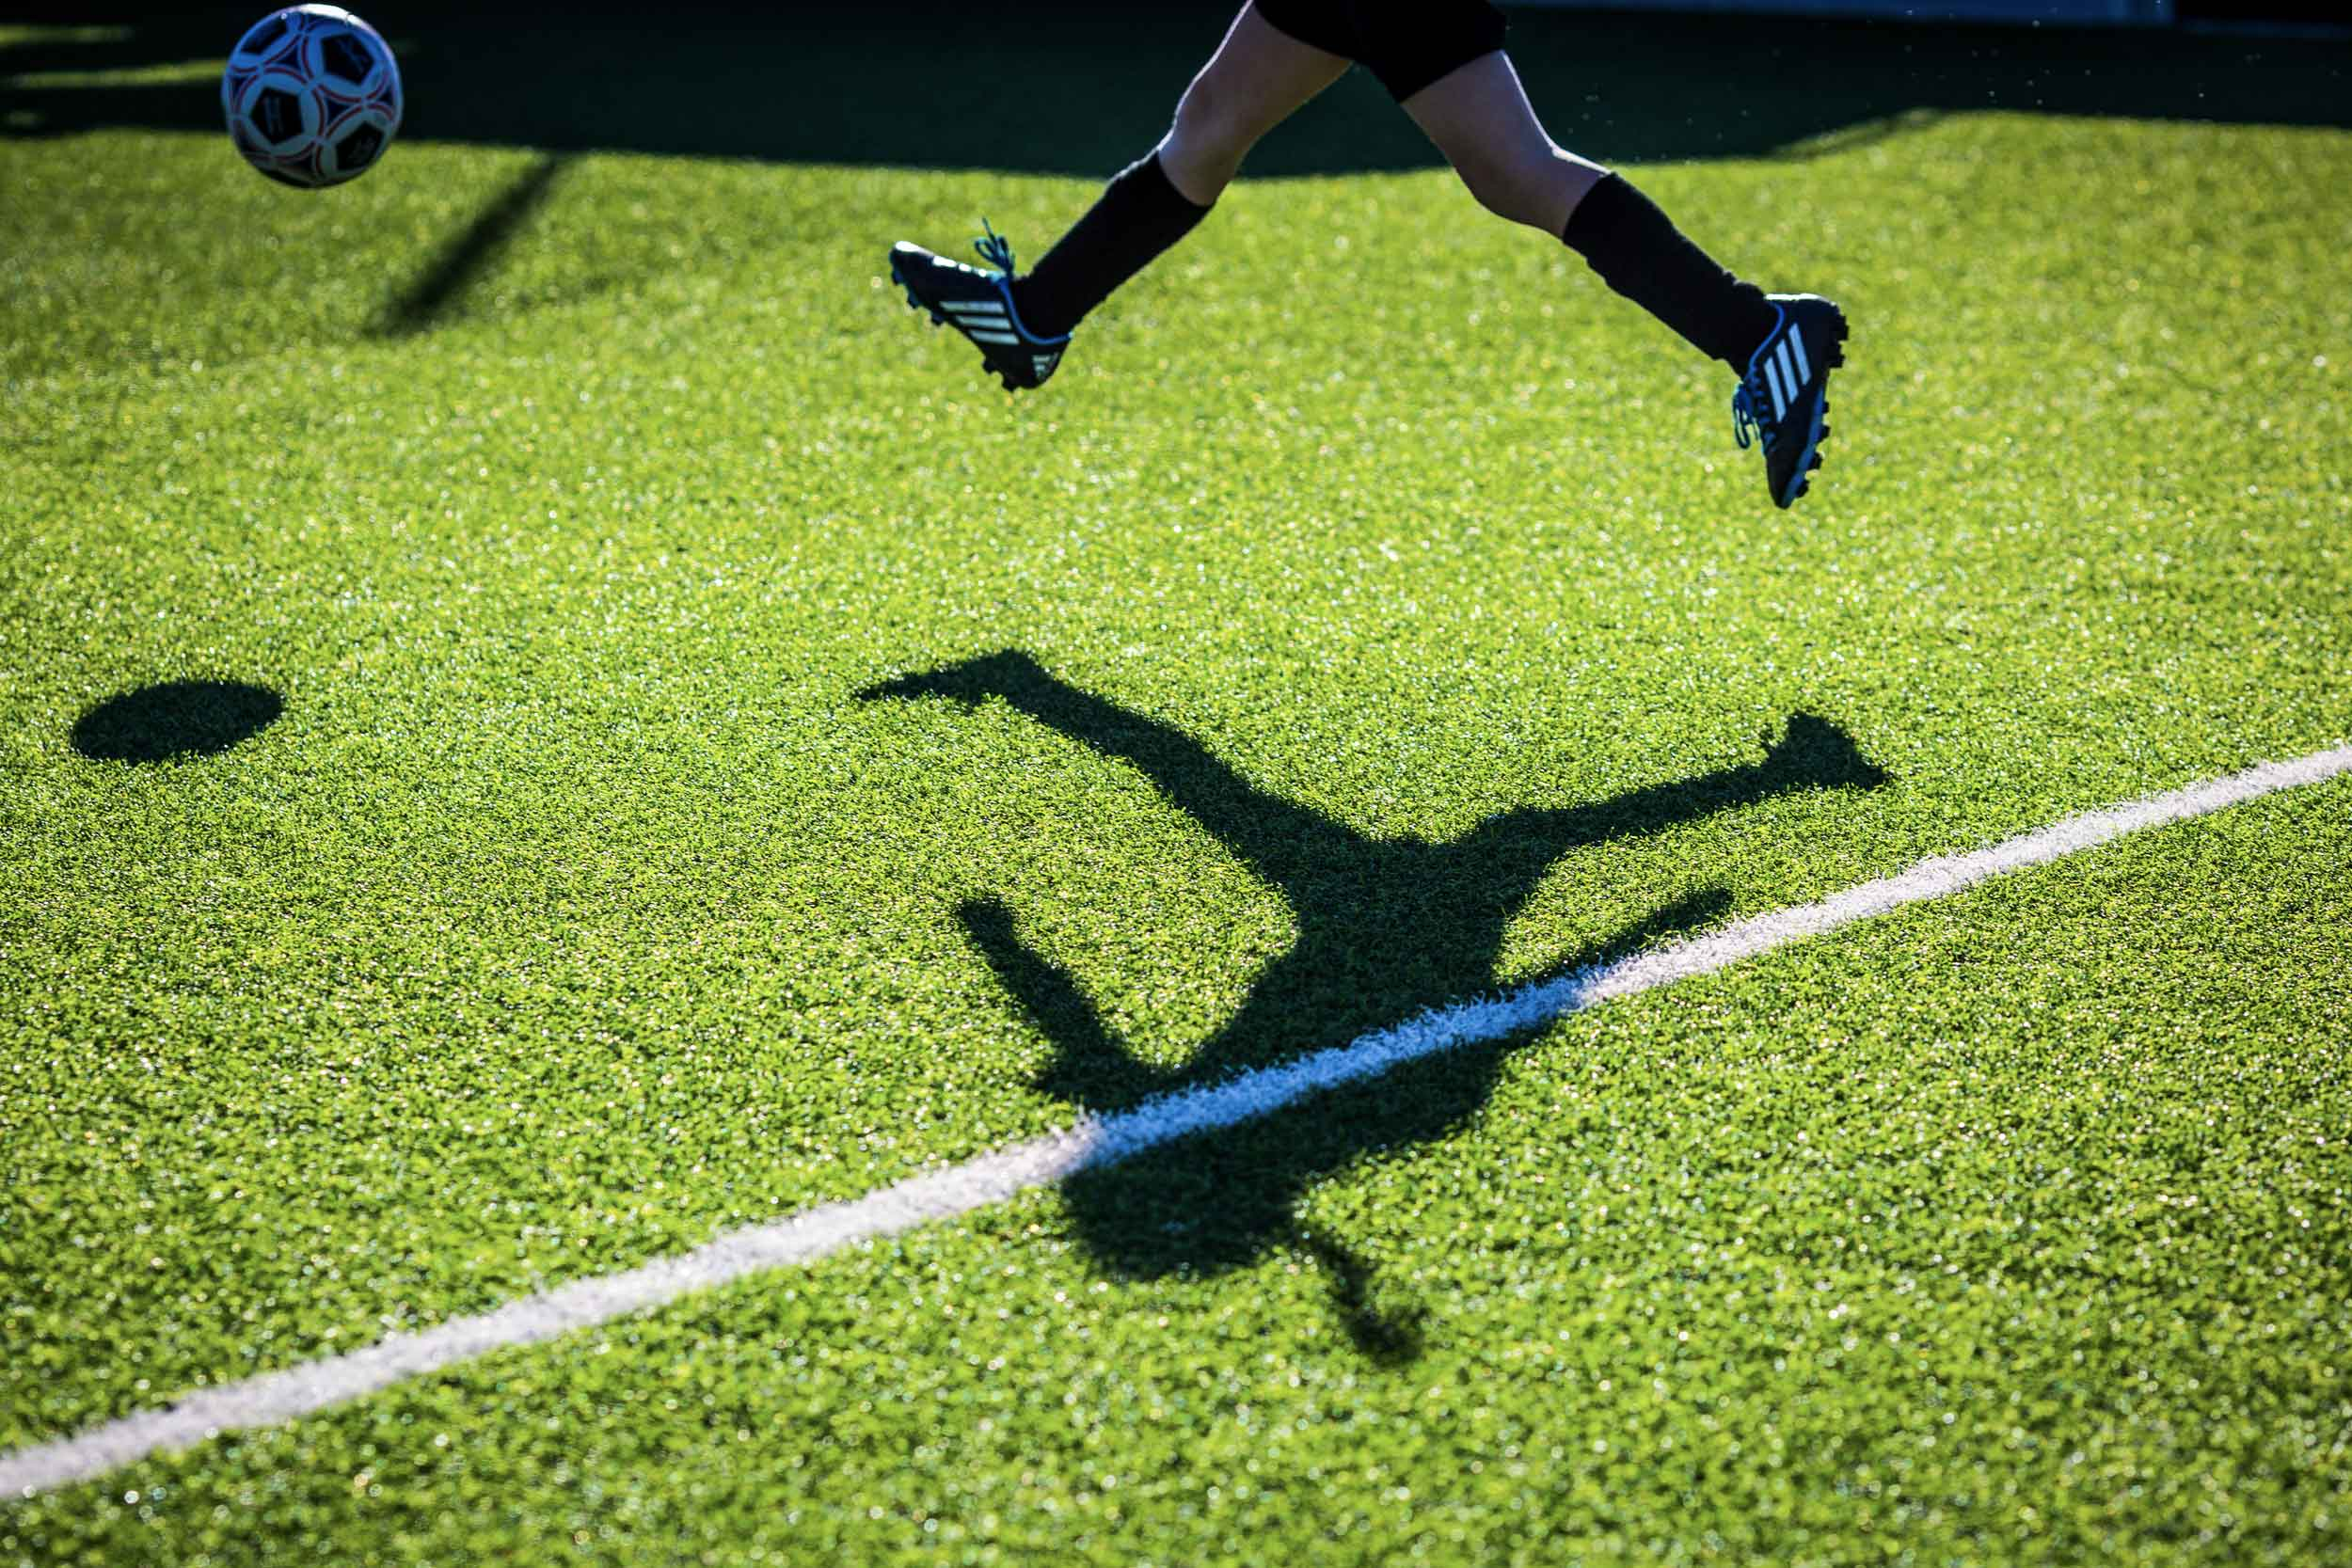 Kid feet jumping in the air with shadow on turf.